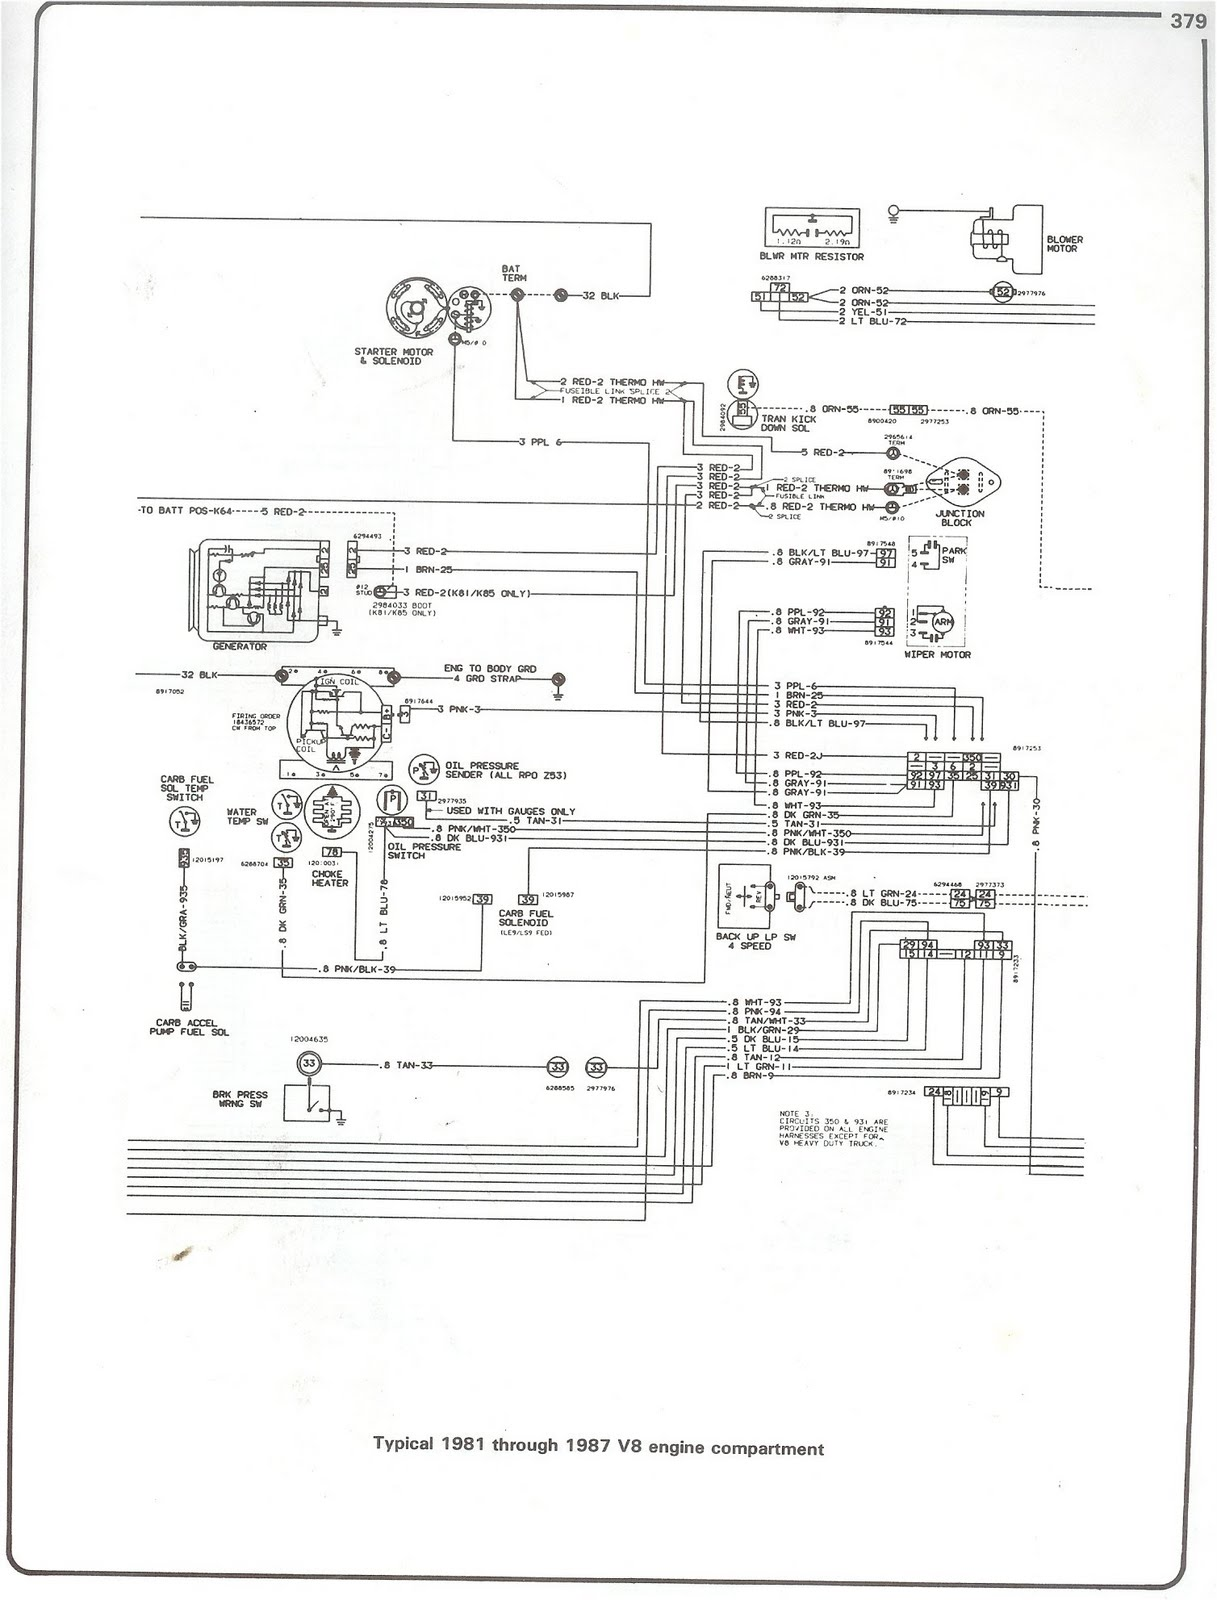 Mini Cooper Wiring Diagram 04 Data Diagrams N14 Block And Schematic Free Auto 1981 1987 Chevrolet V8 Truck 2010 05